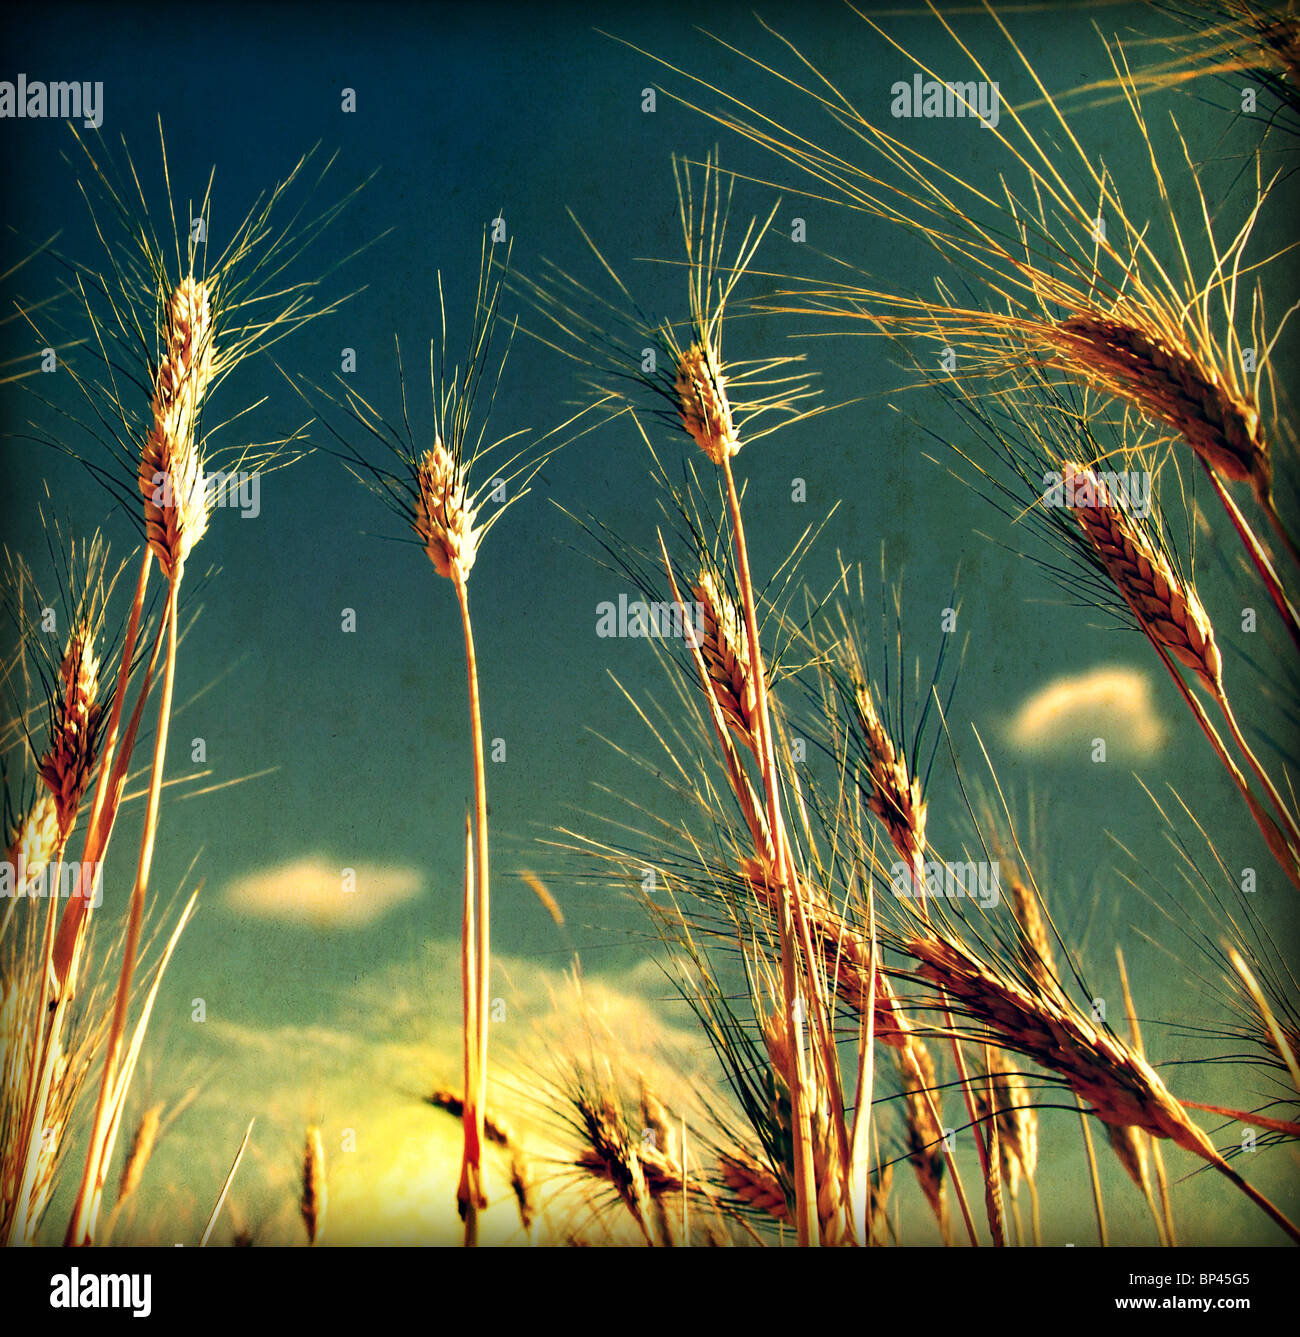 Grunge Wheat field background with dirty old texture - Stock Image